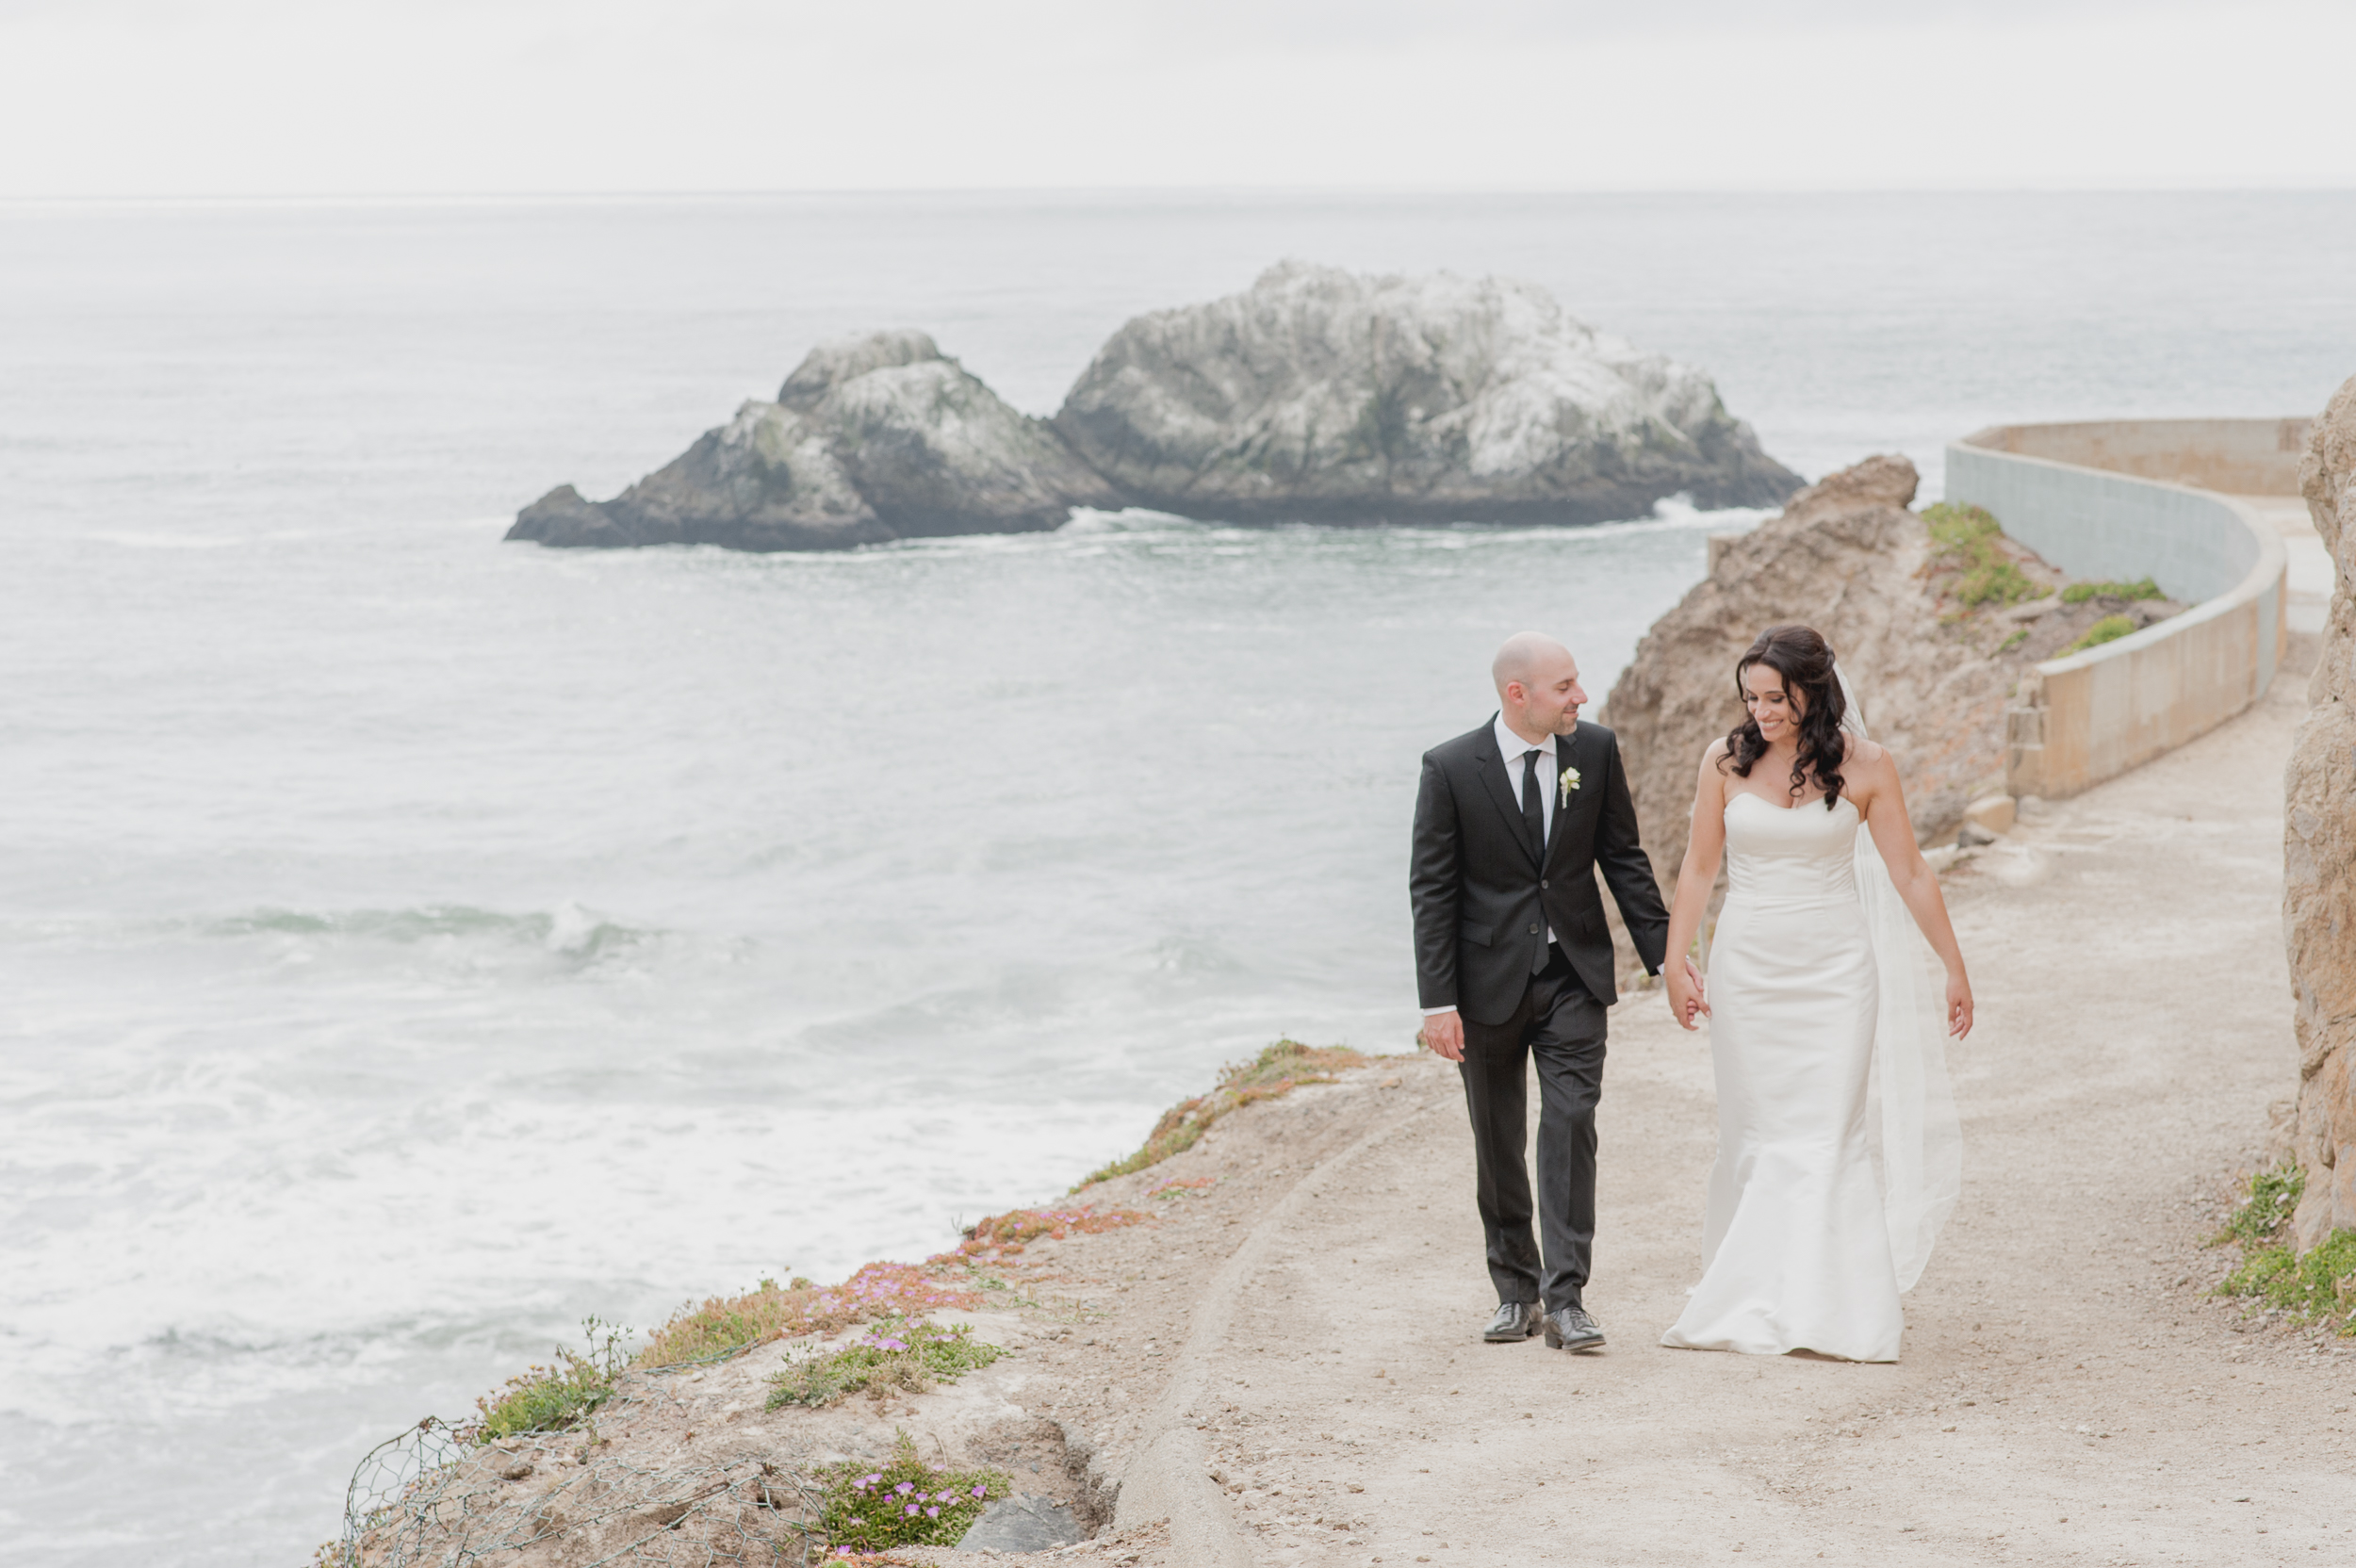 intimate-san-francisco-city-hall-lands-end-wedding-43.jpg